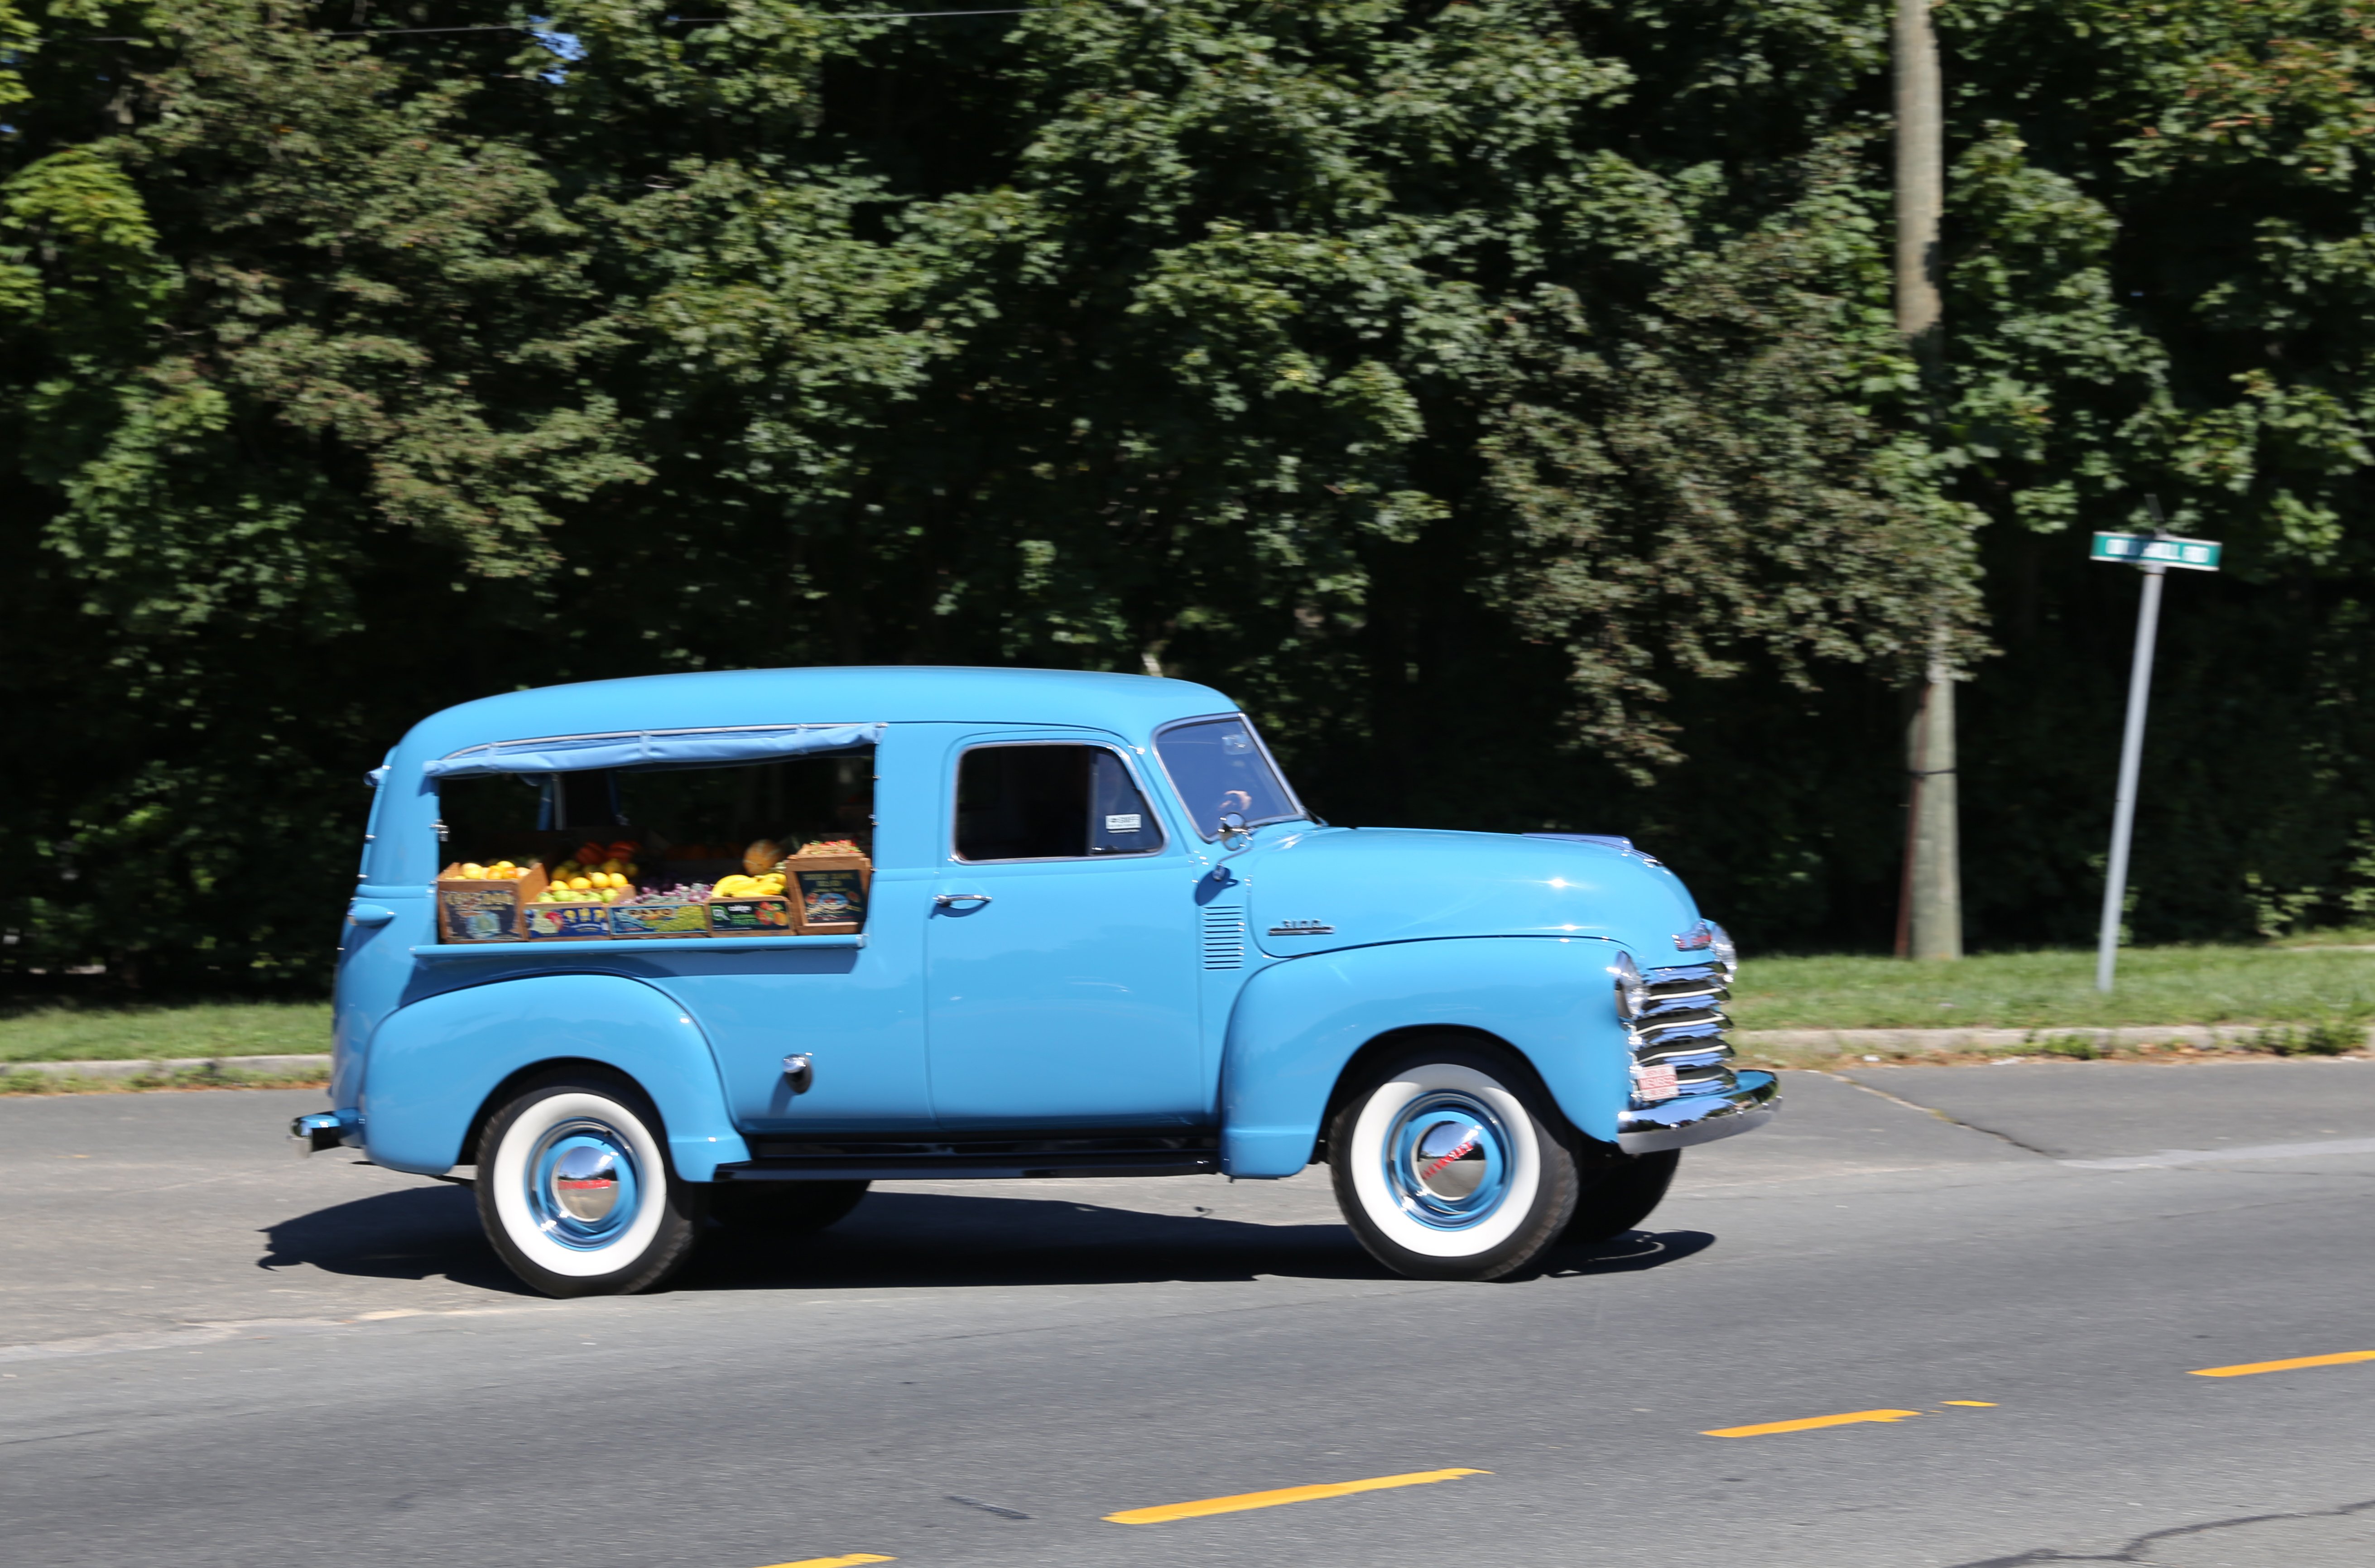 A 1953 blue Canopy Express from Chevrolet loaded with fruits and veg. & Canopy express - Wikipedia